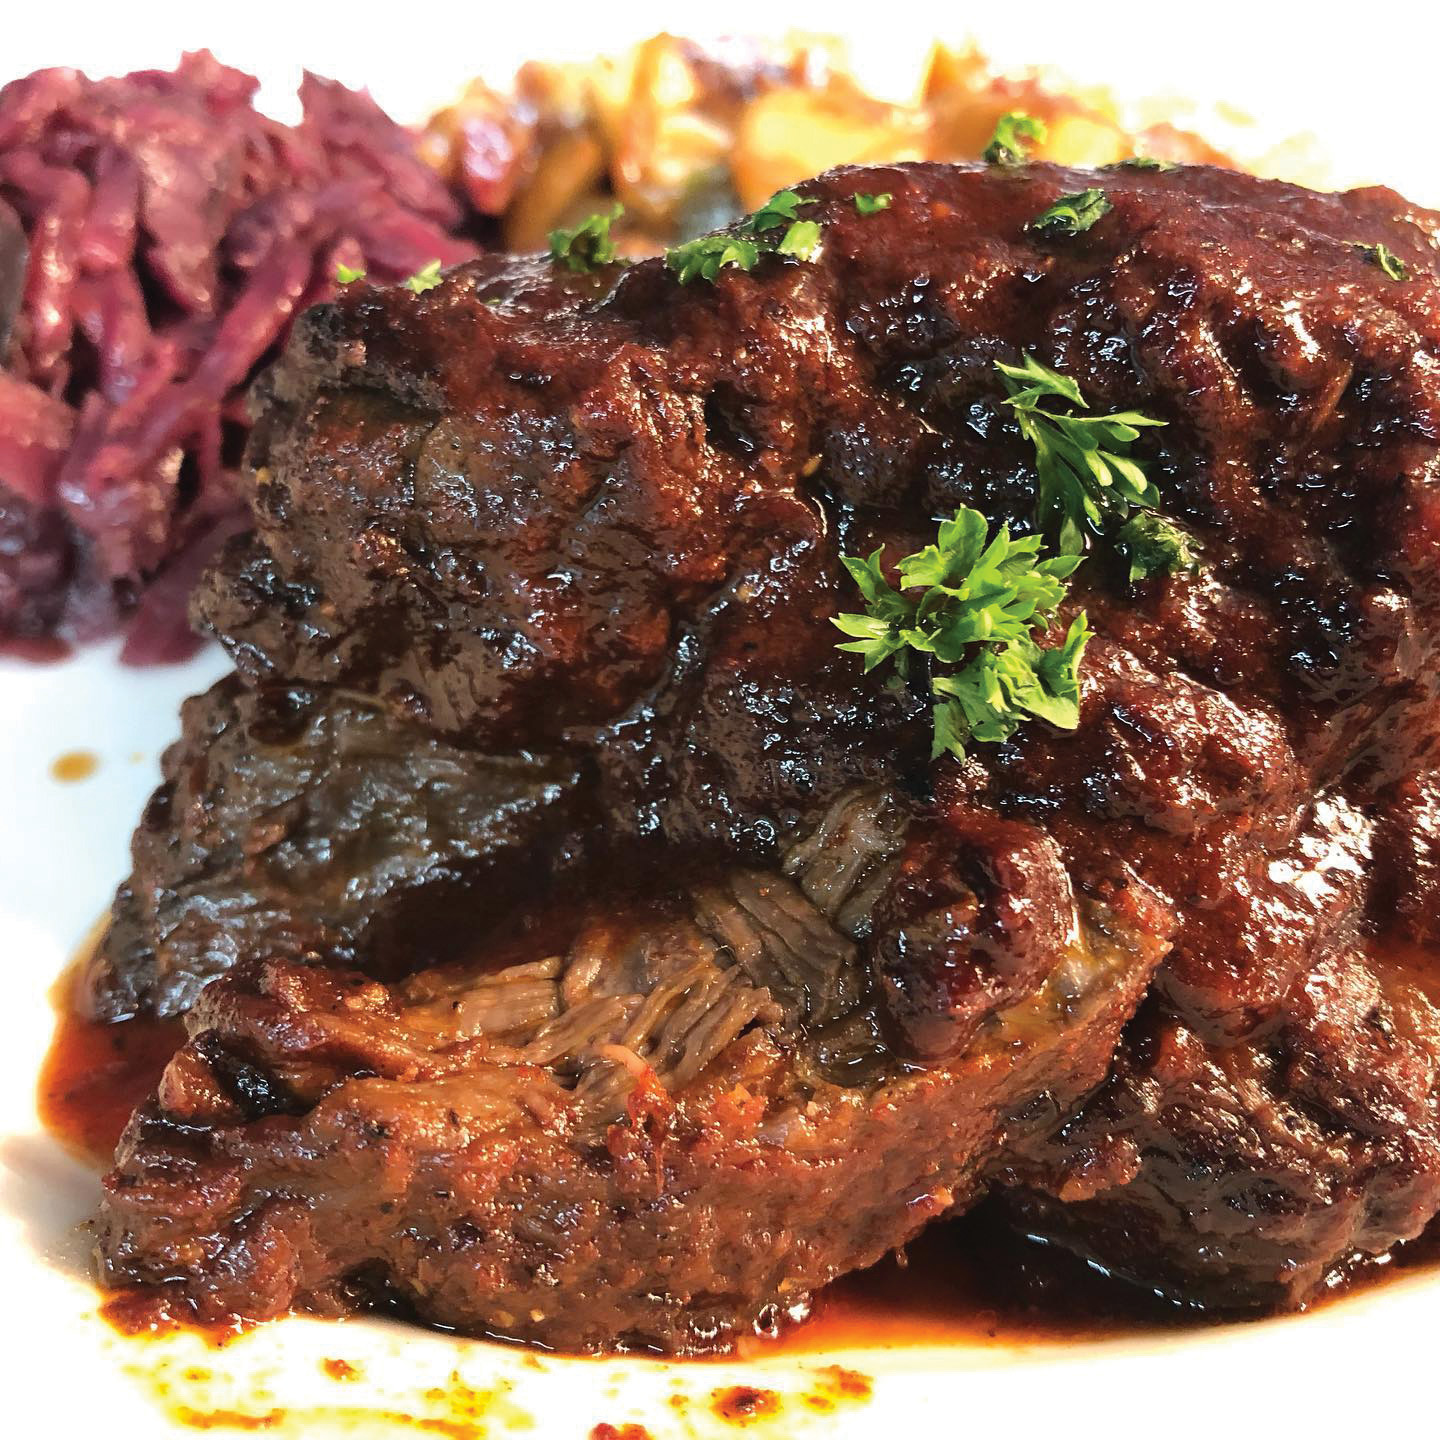 Sauerbraten with Braised Red Cabbage